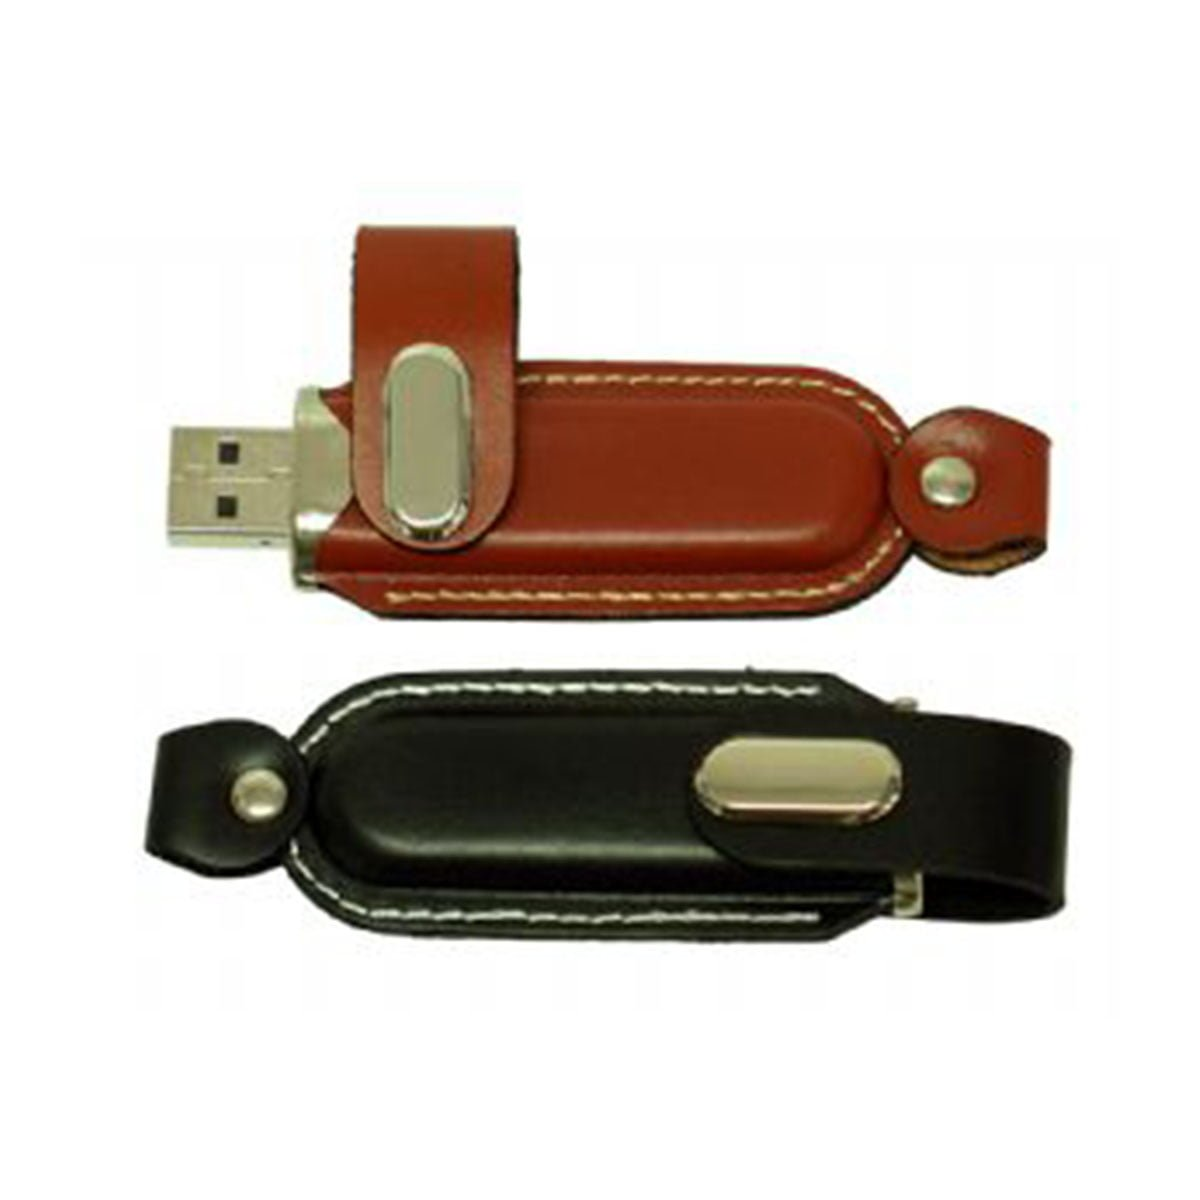 Executive – USB Flash Drive-Available in 2 Colours.